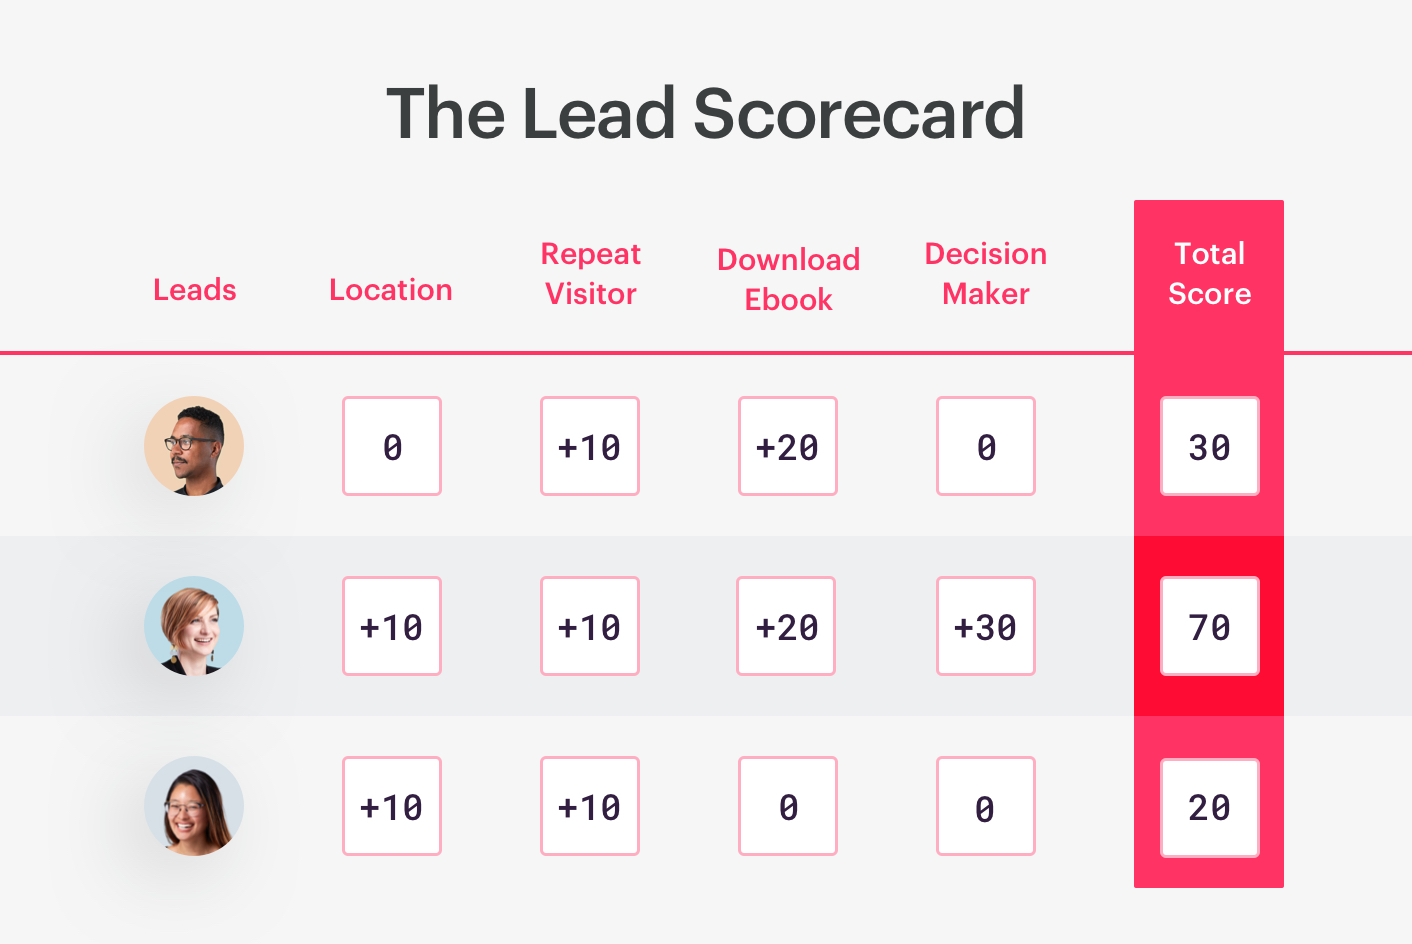 a lead scorecard example.